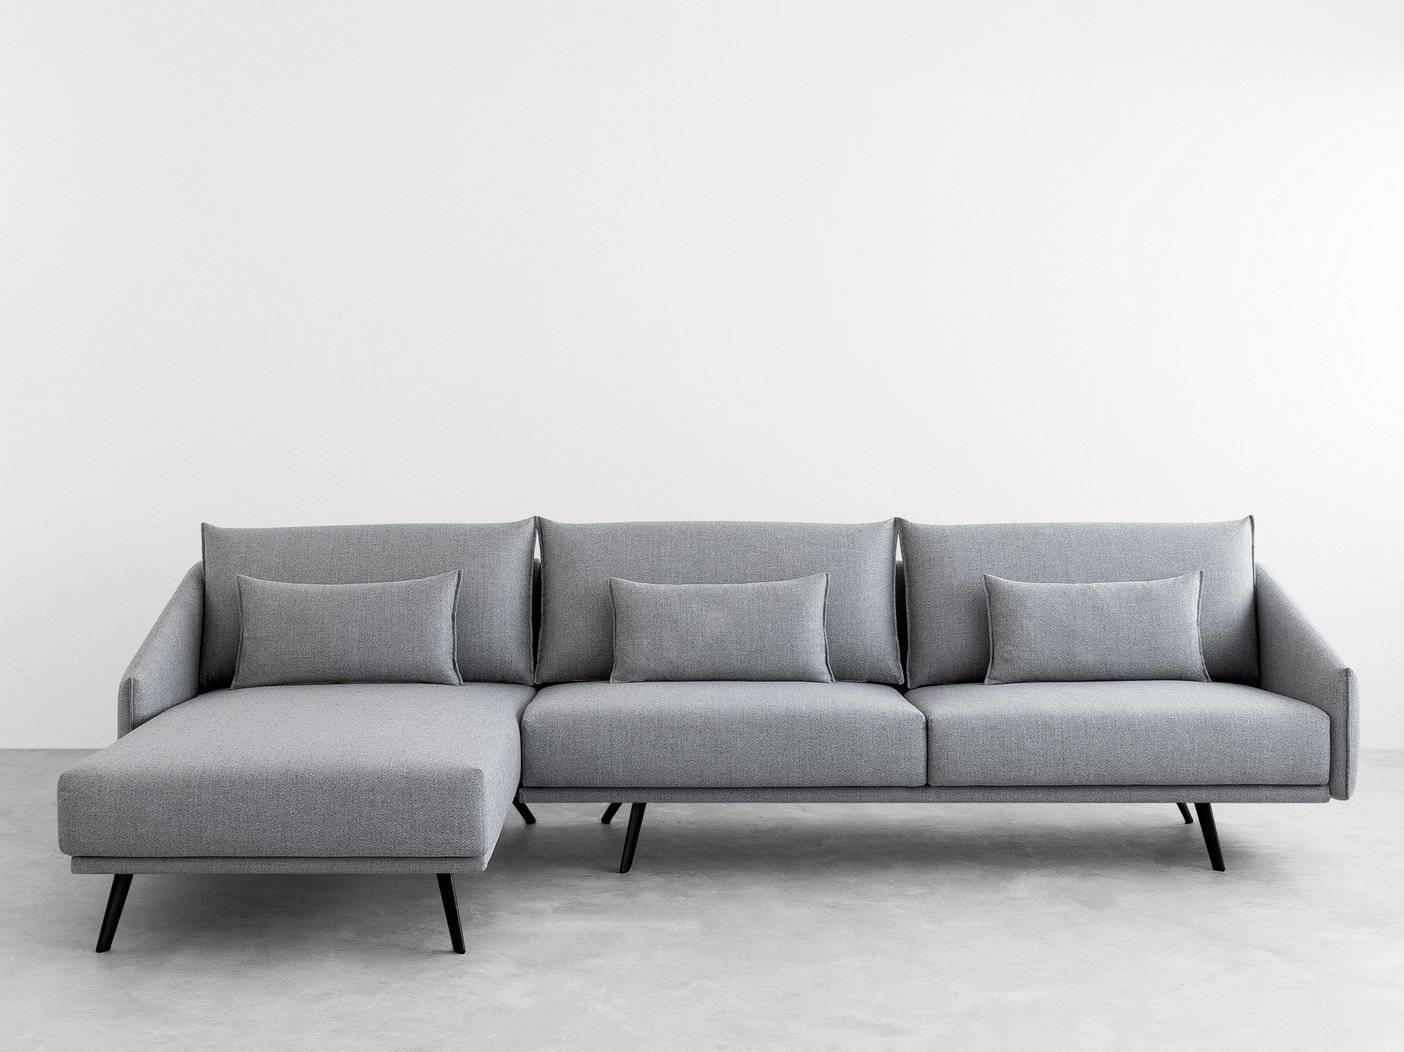 costura sofa with chaise longue costura collection by stua